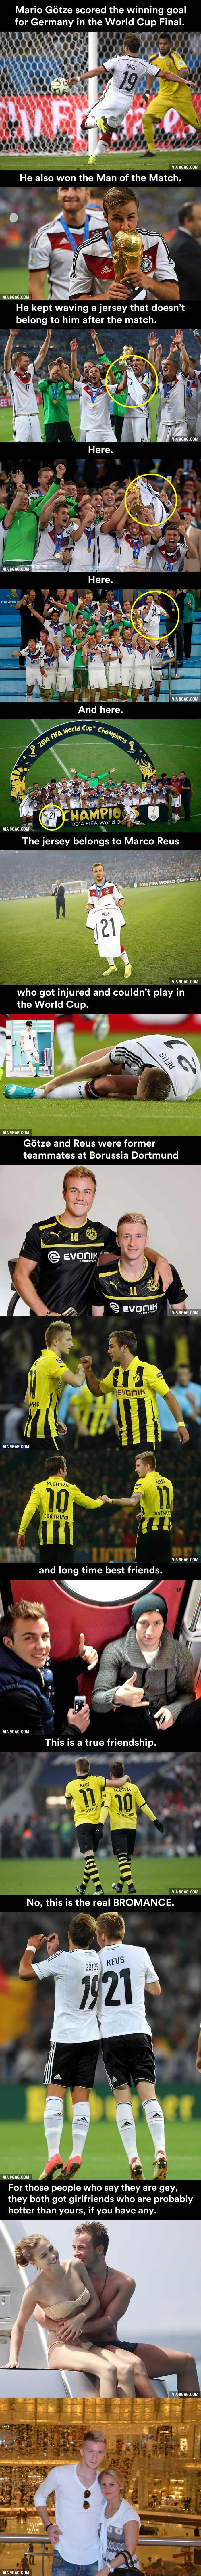 I know this story, but then mario left his club and reus and joined they're rivals, bayern munchen (which has majority of germany 's national team players..... But they are still bffs @ayemenf did you know this story???